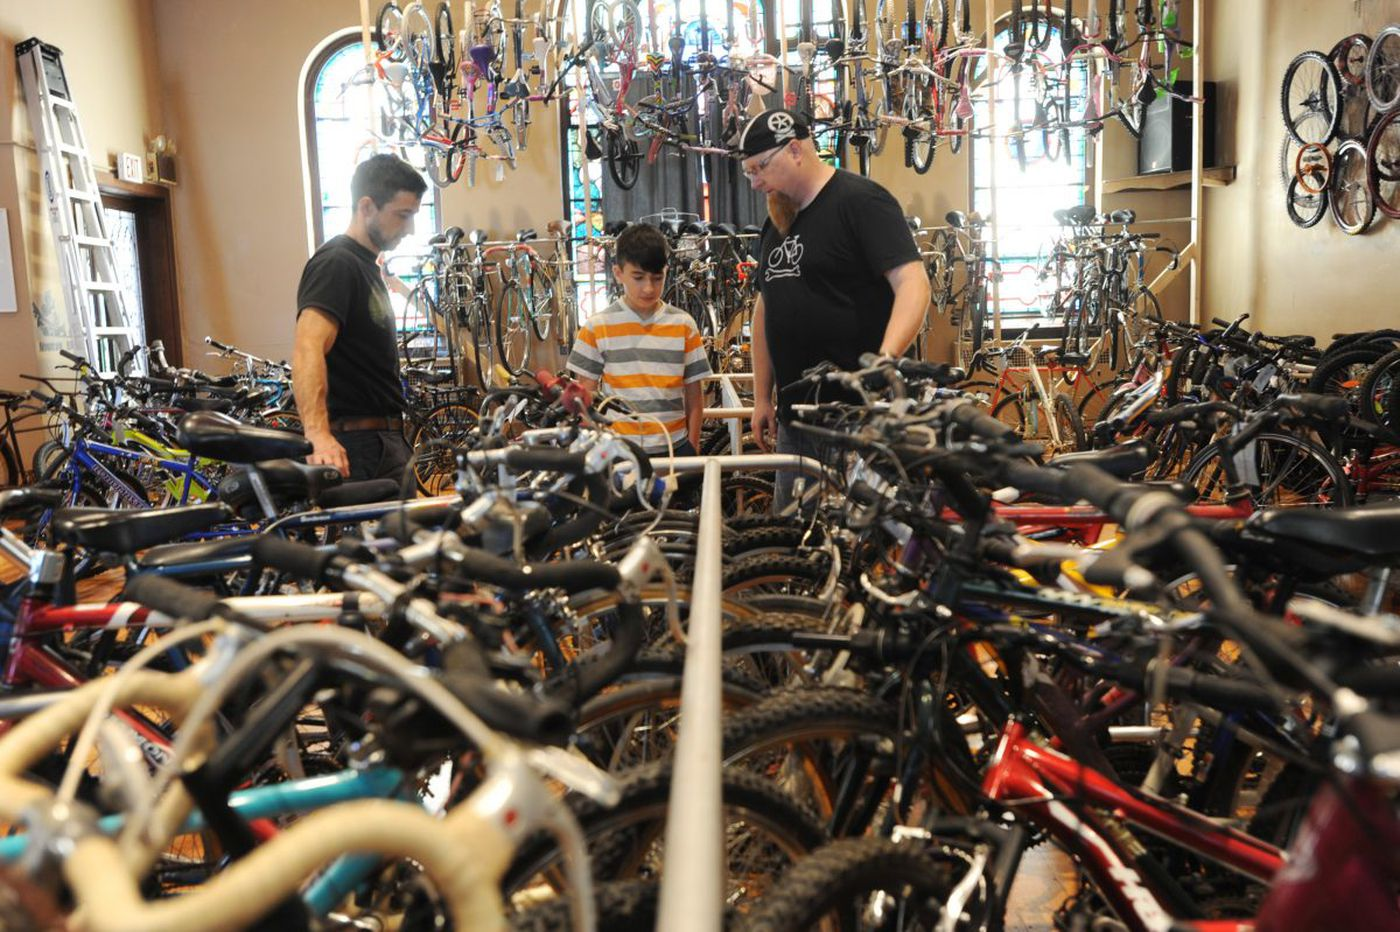 From bike shop to drive-thru prayer, churches try thinking outside the pew